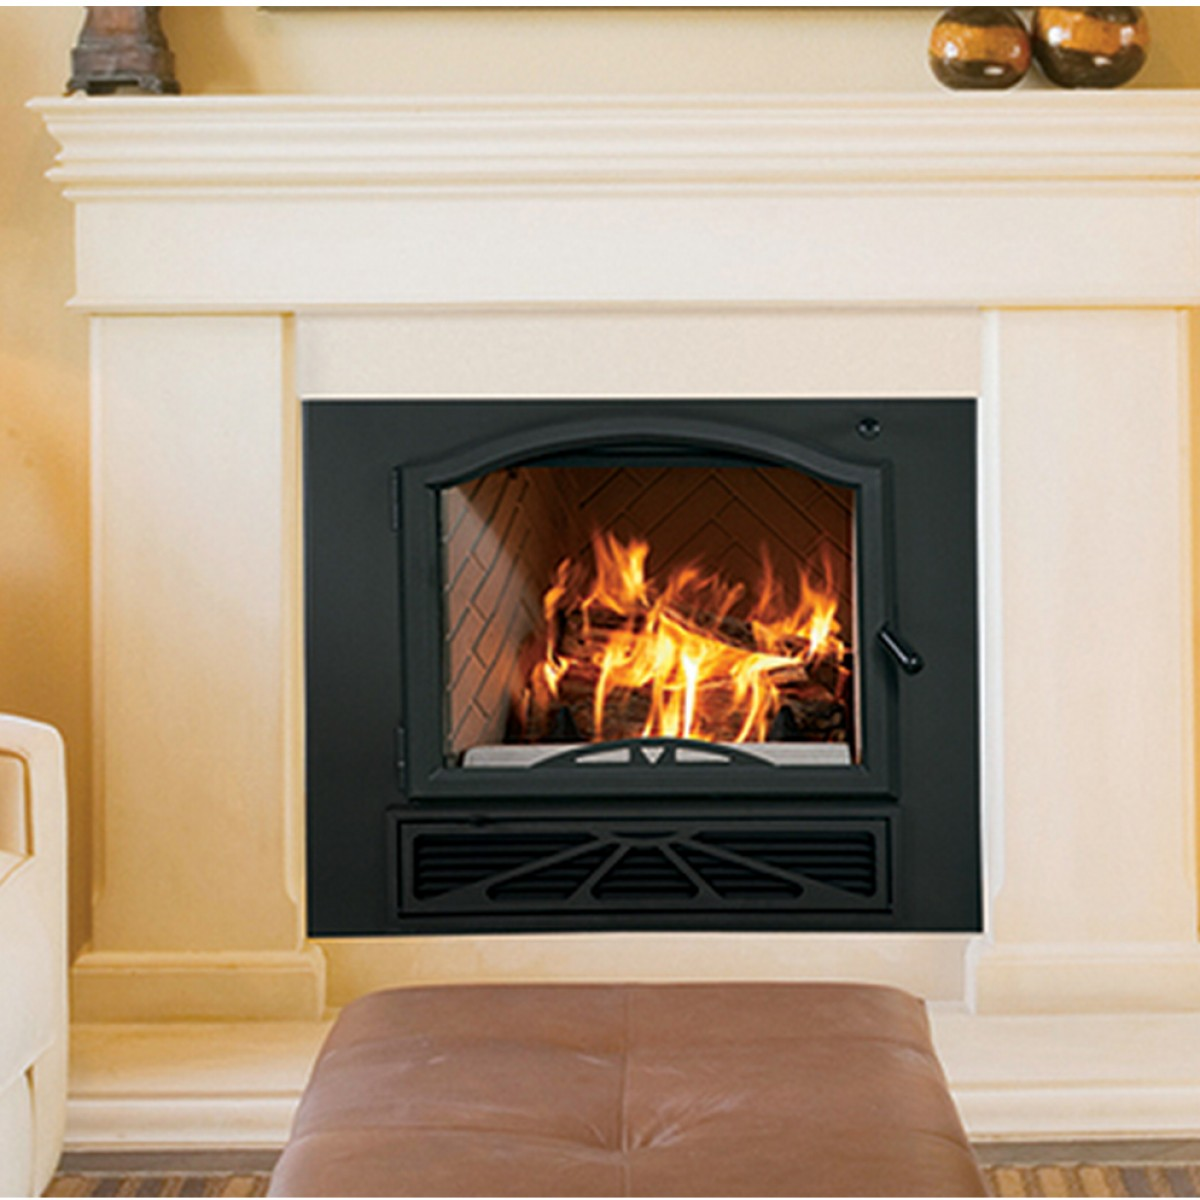 Ihp Superior Wrt Wct2000 Wood Burning Fireplace